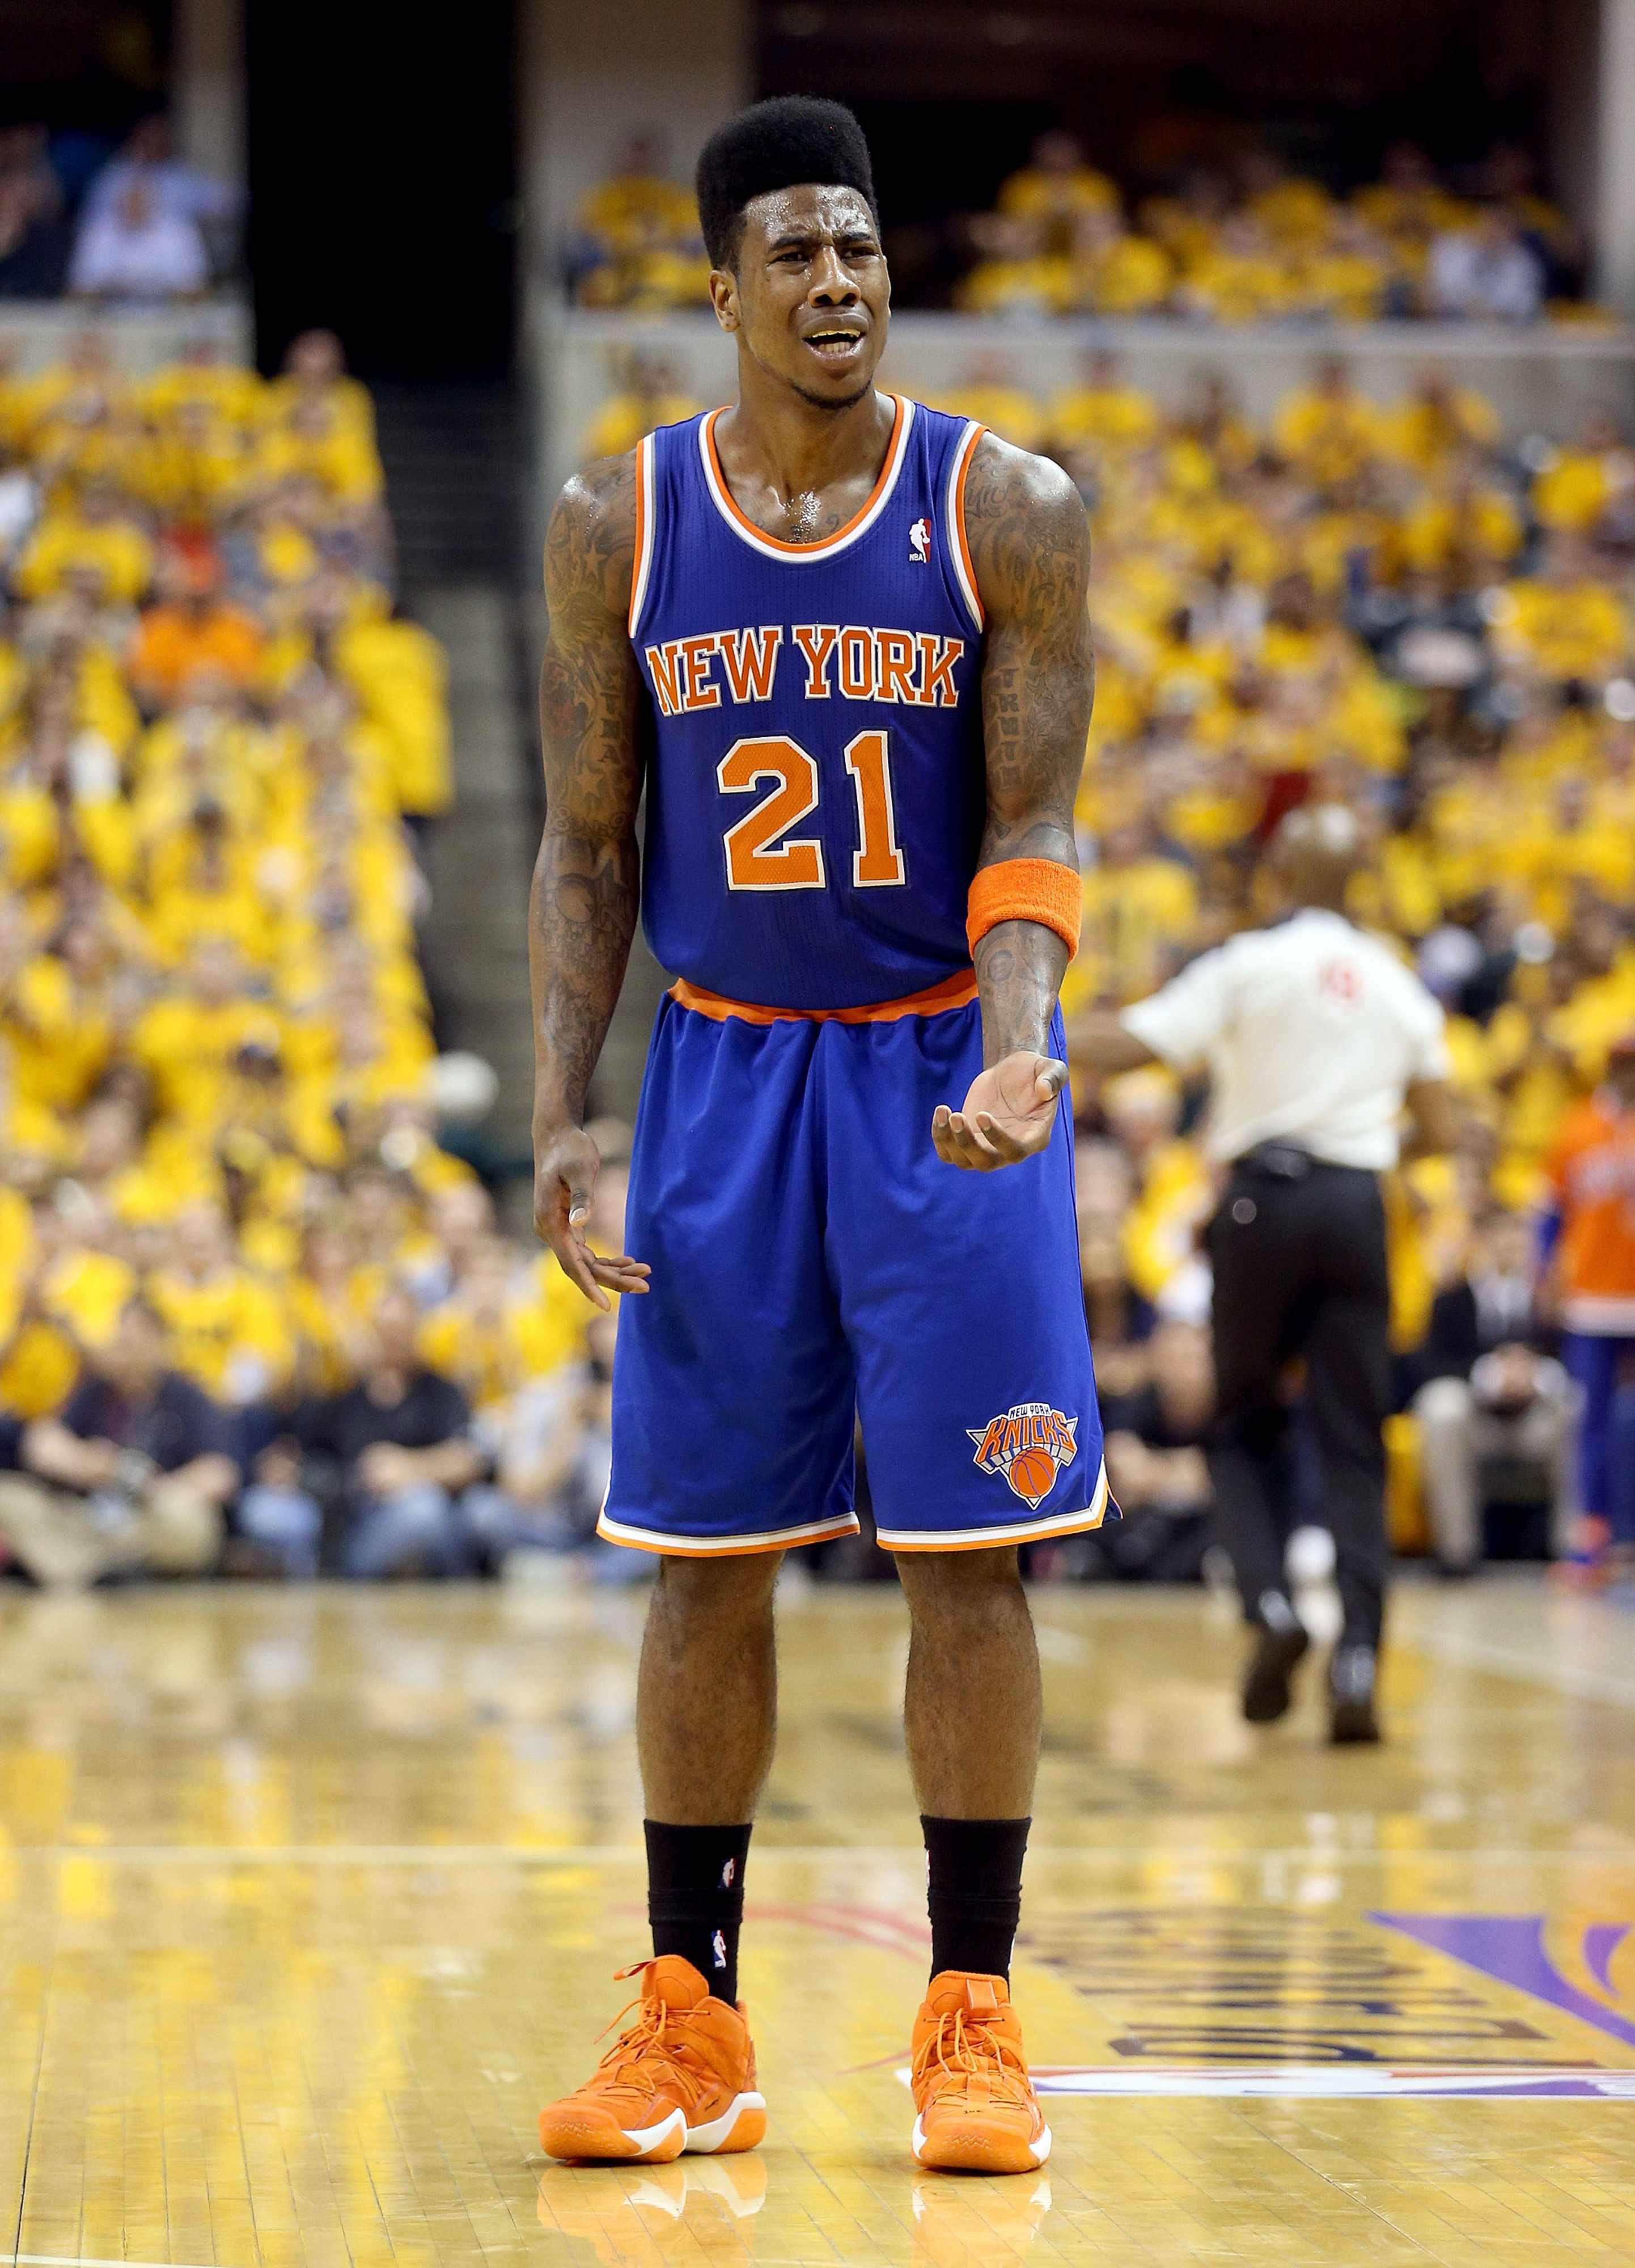 Don't like this photo, but I must show Shump